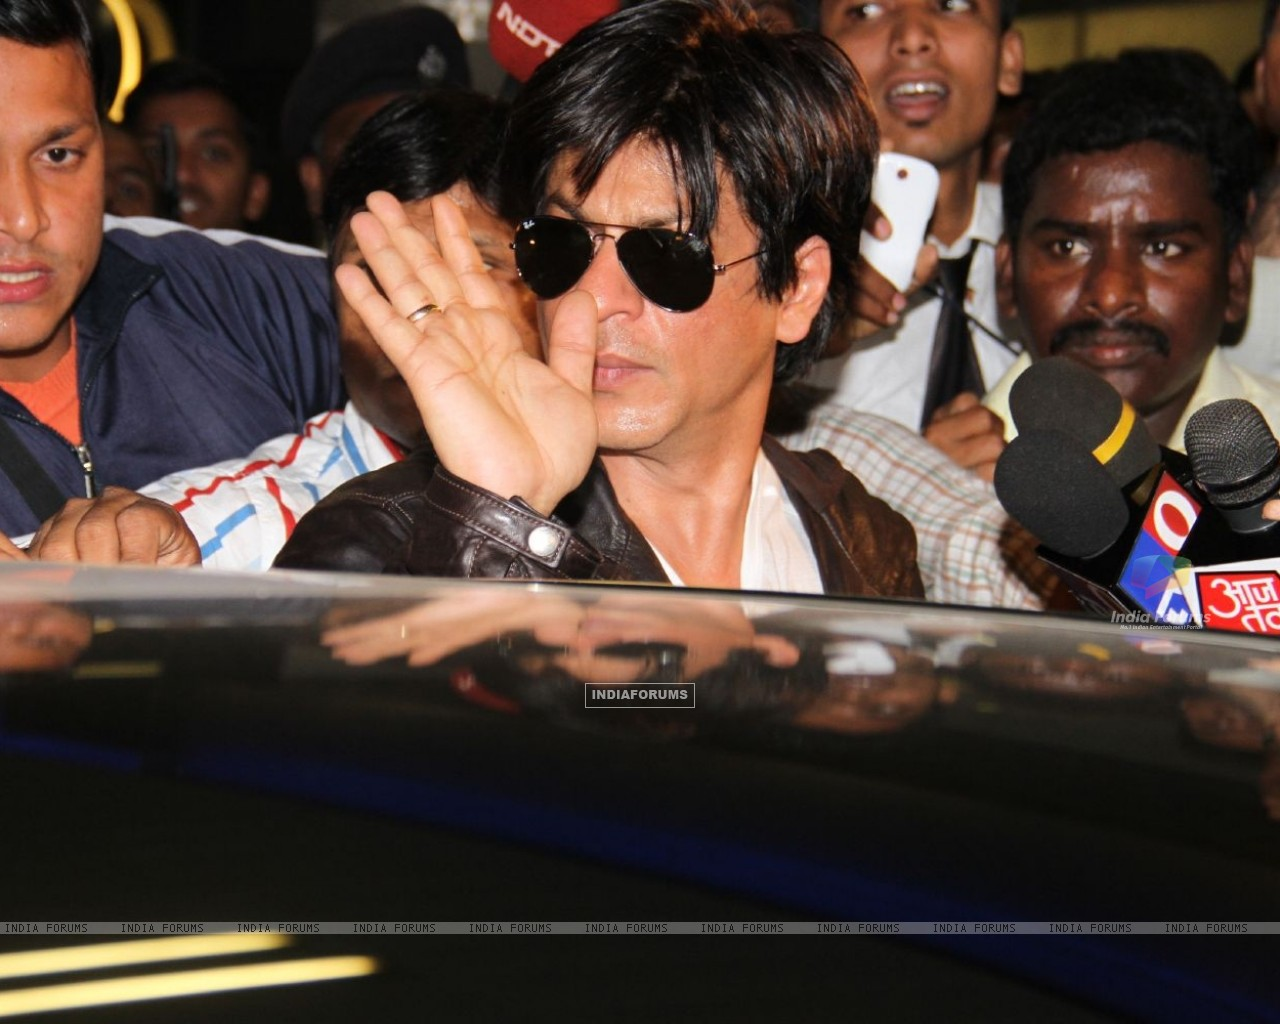 Shahrukh arrived at Mumbai airport from London (190864) size:1280x1024